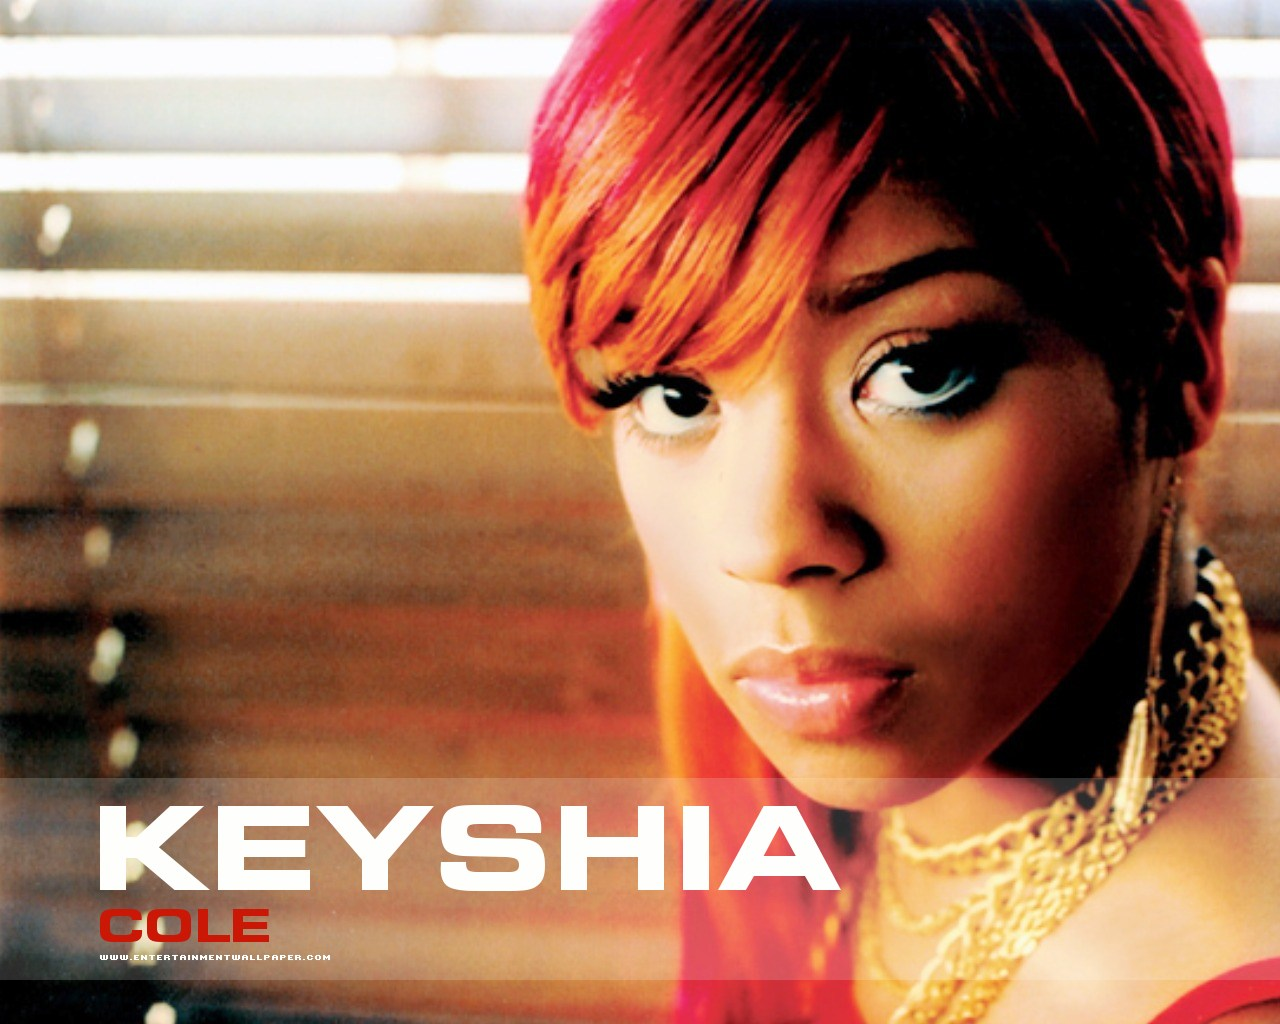 Keyshia Cole Hairstyle Wallpapers